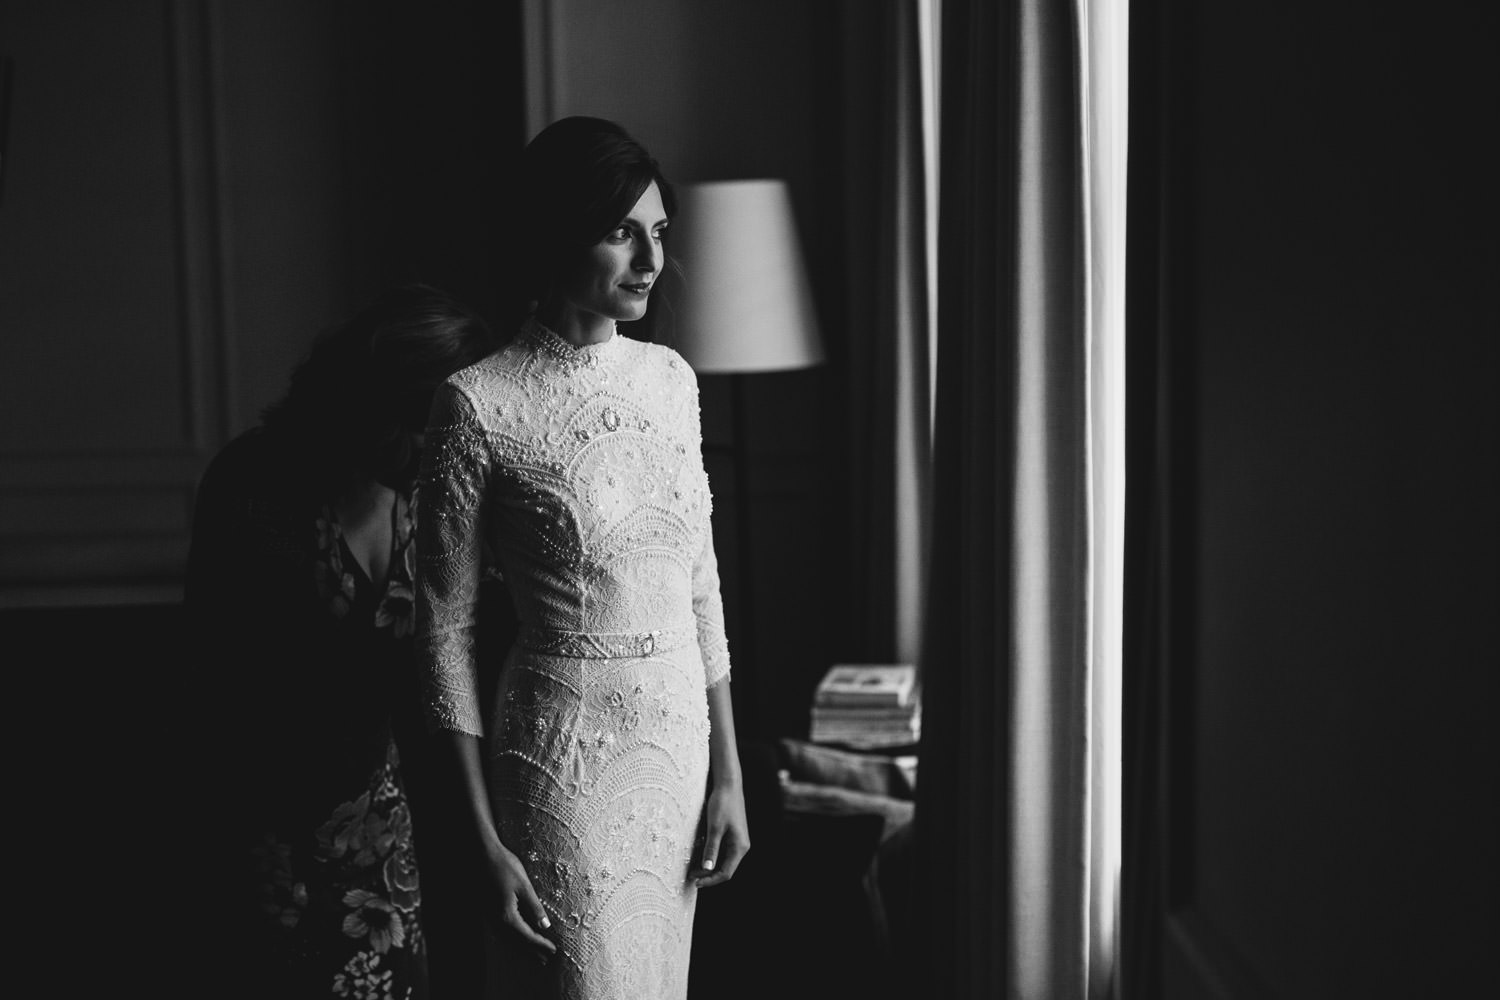 photograph of the bride getting before the wedding at the gray hotel